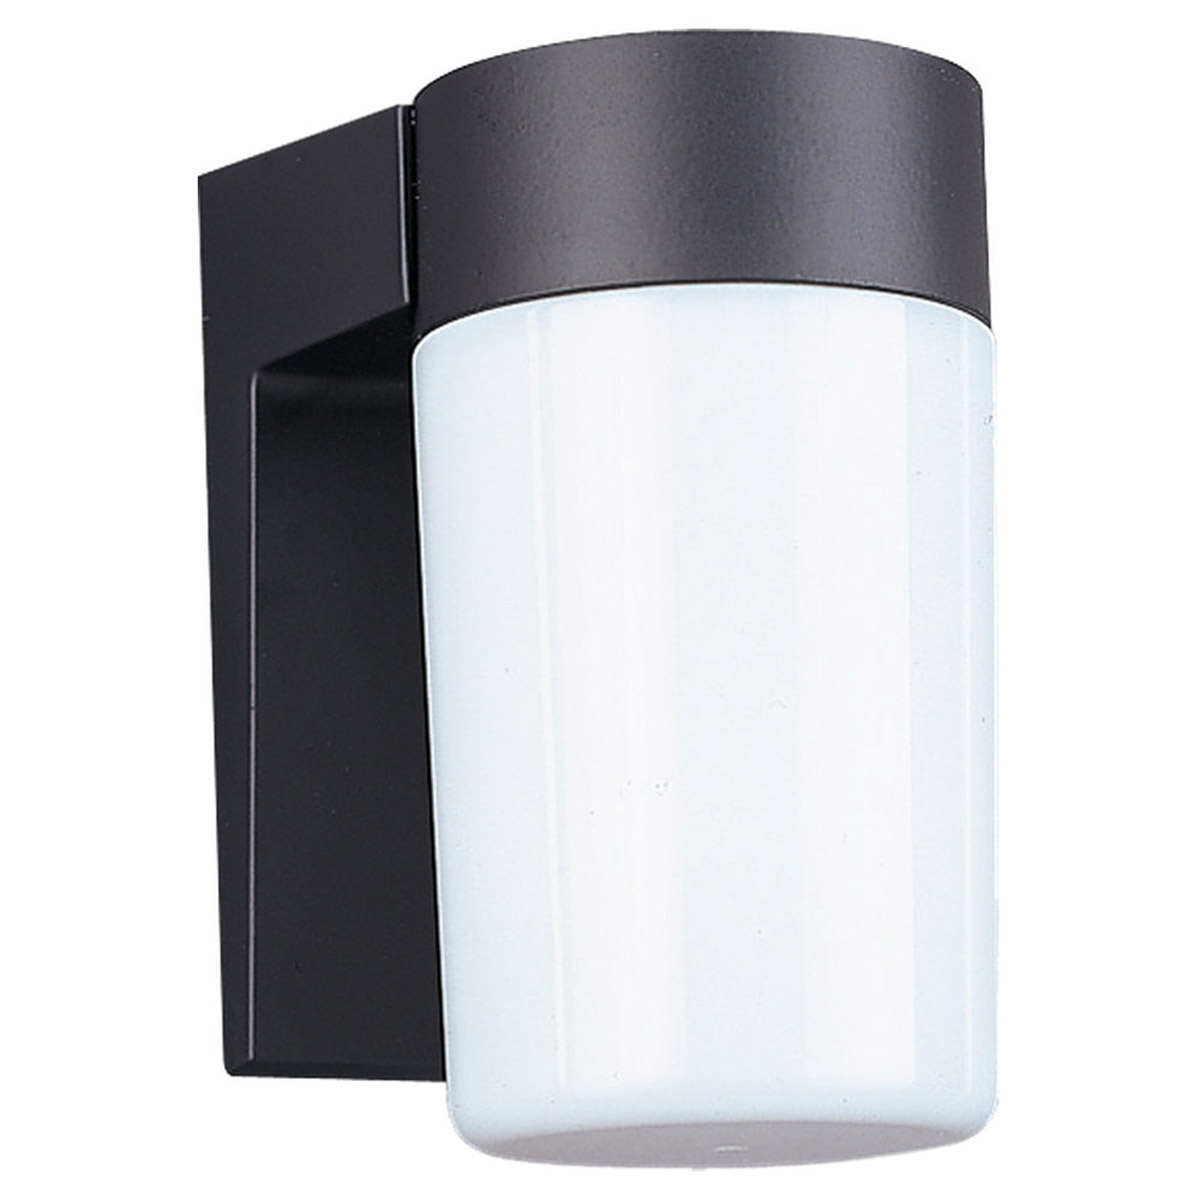 Sea Gull Lighting Signature 1 Light Outdoor Wall Lantern in Black 8301-12